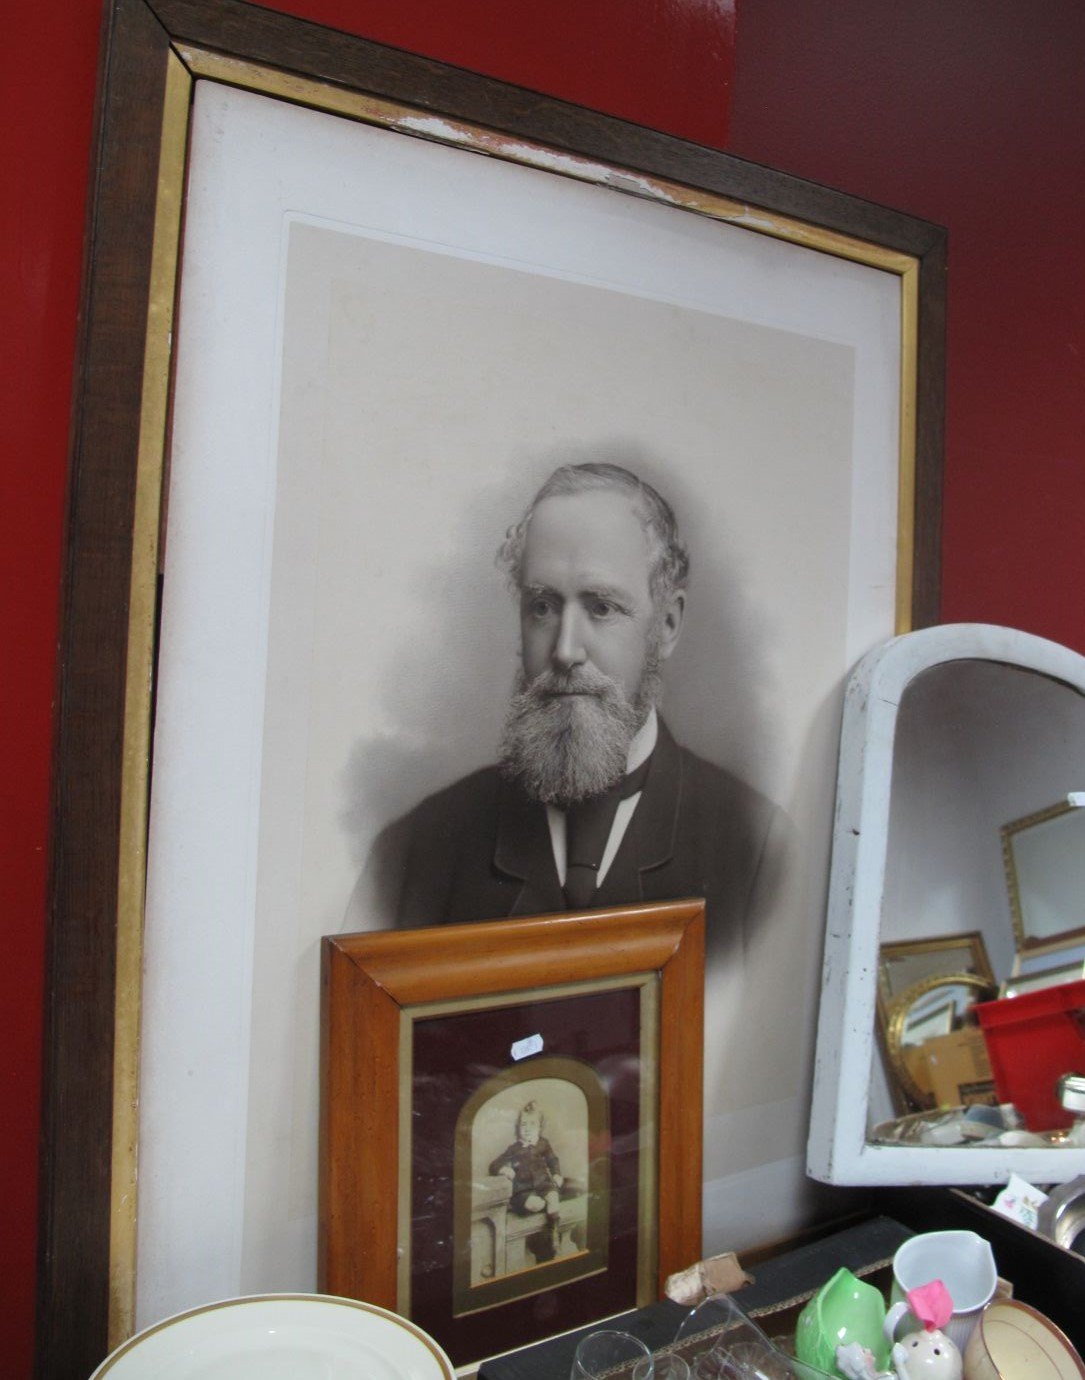 Lot 14 - Early XX Century Photo Portrait of a Gentleman, 60.5 x 48cm, in an oak frame, small photographs of